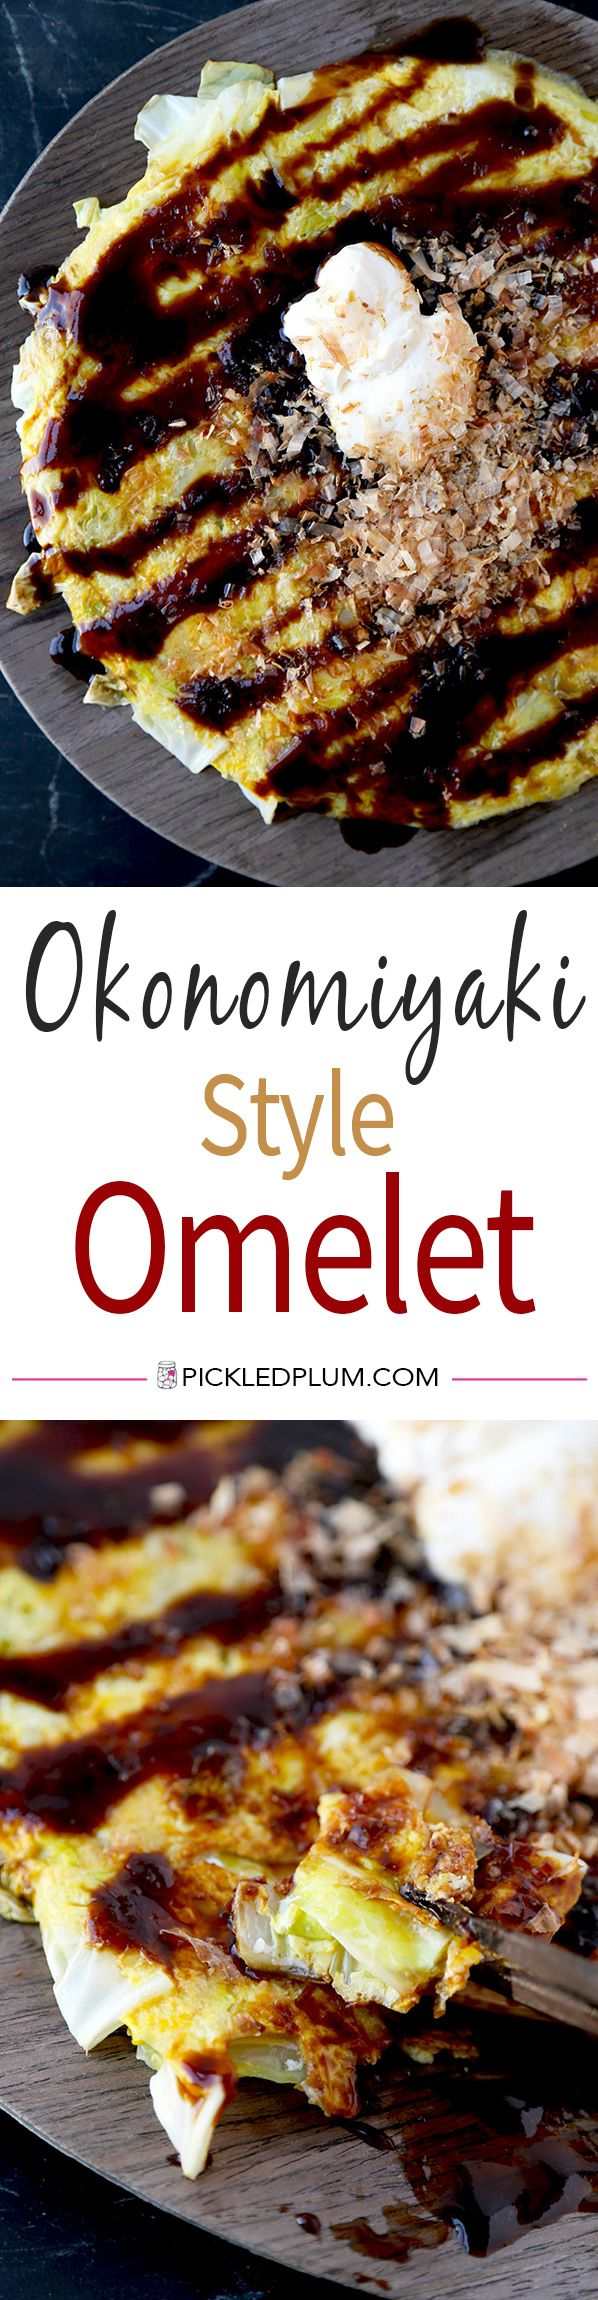 Okonomiyaki Style Omelet - No batter is needed for this healthy and delicious okonomiyaki style omelet recipe. Get all the flavors of okonomiyaki minus the carbs! Ready in less than 15 minutes from start to finish. Recipe, Japanese food, omelet, cabbage, Japanese pizza | pickledplum.com